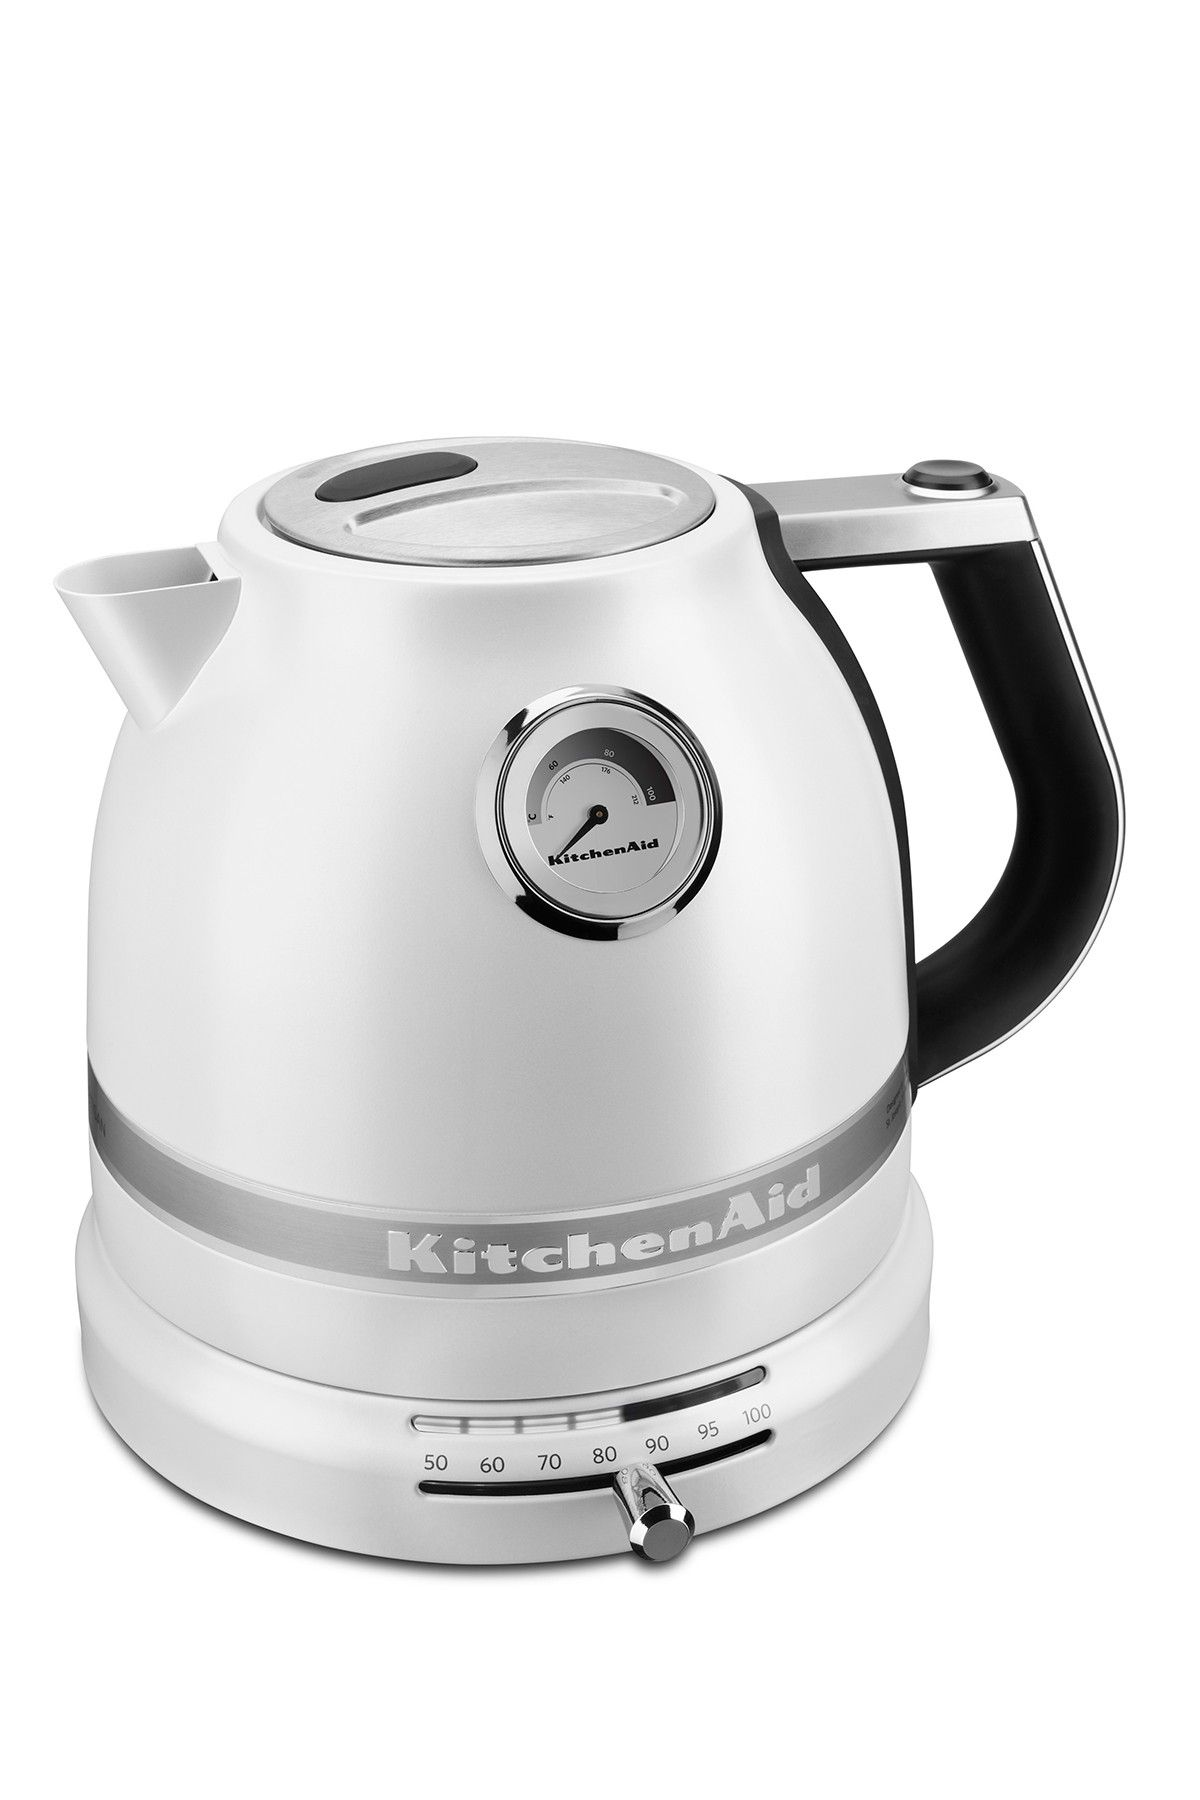 Frosted pearl white pro line series electric kettle by